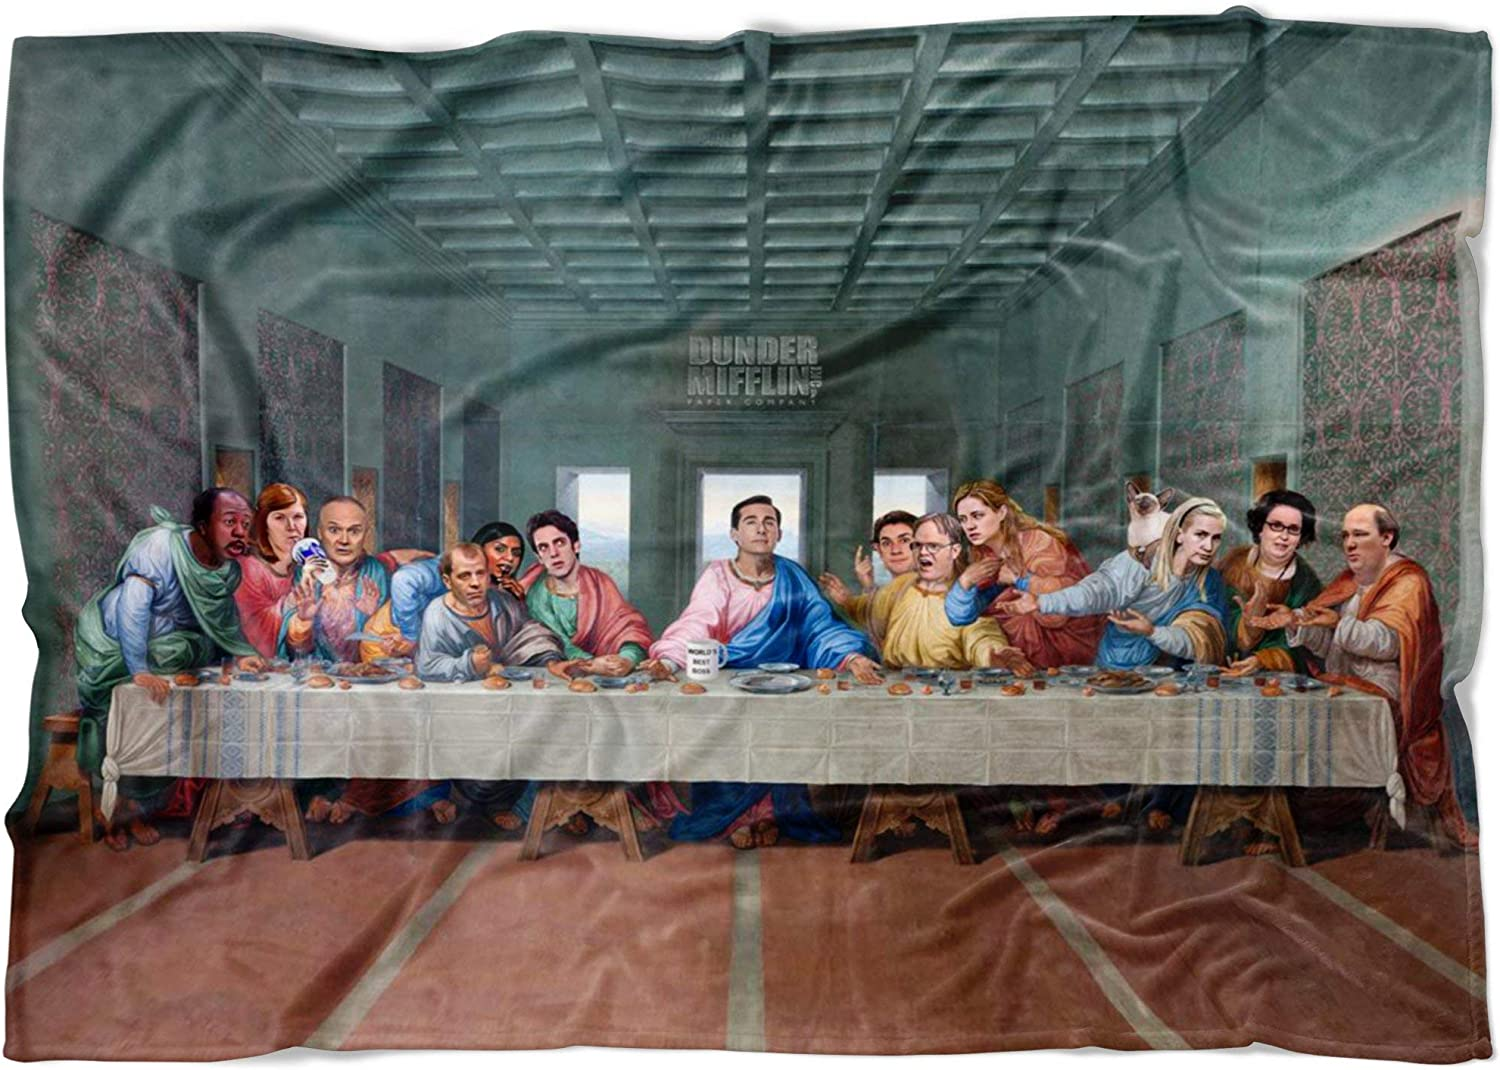 The Last Supper at Dunder Mifflin Fleece Throw Blanket - The Office TV Show Funny Meme Throw Blanket - Funny Blankets for Adults